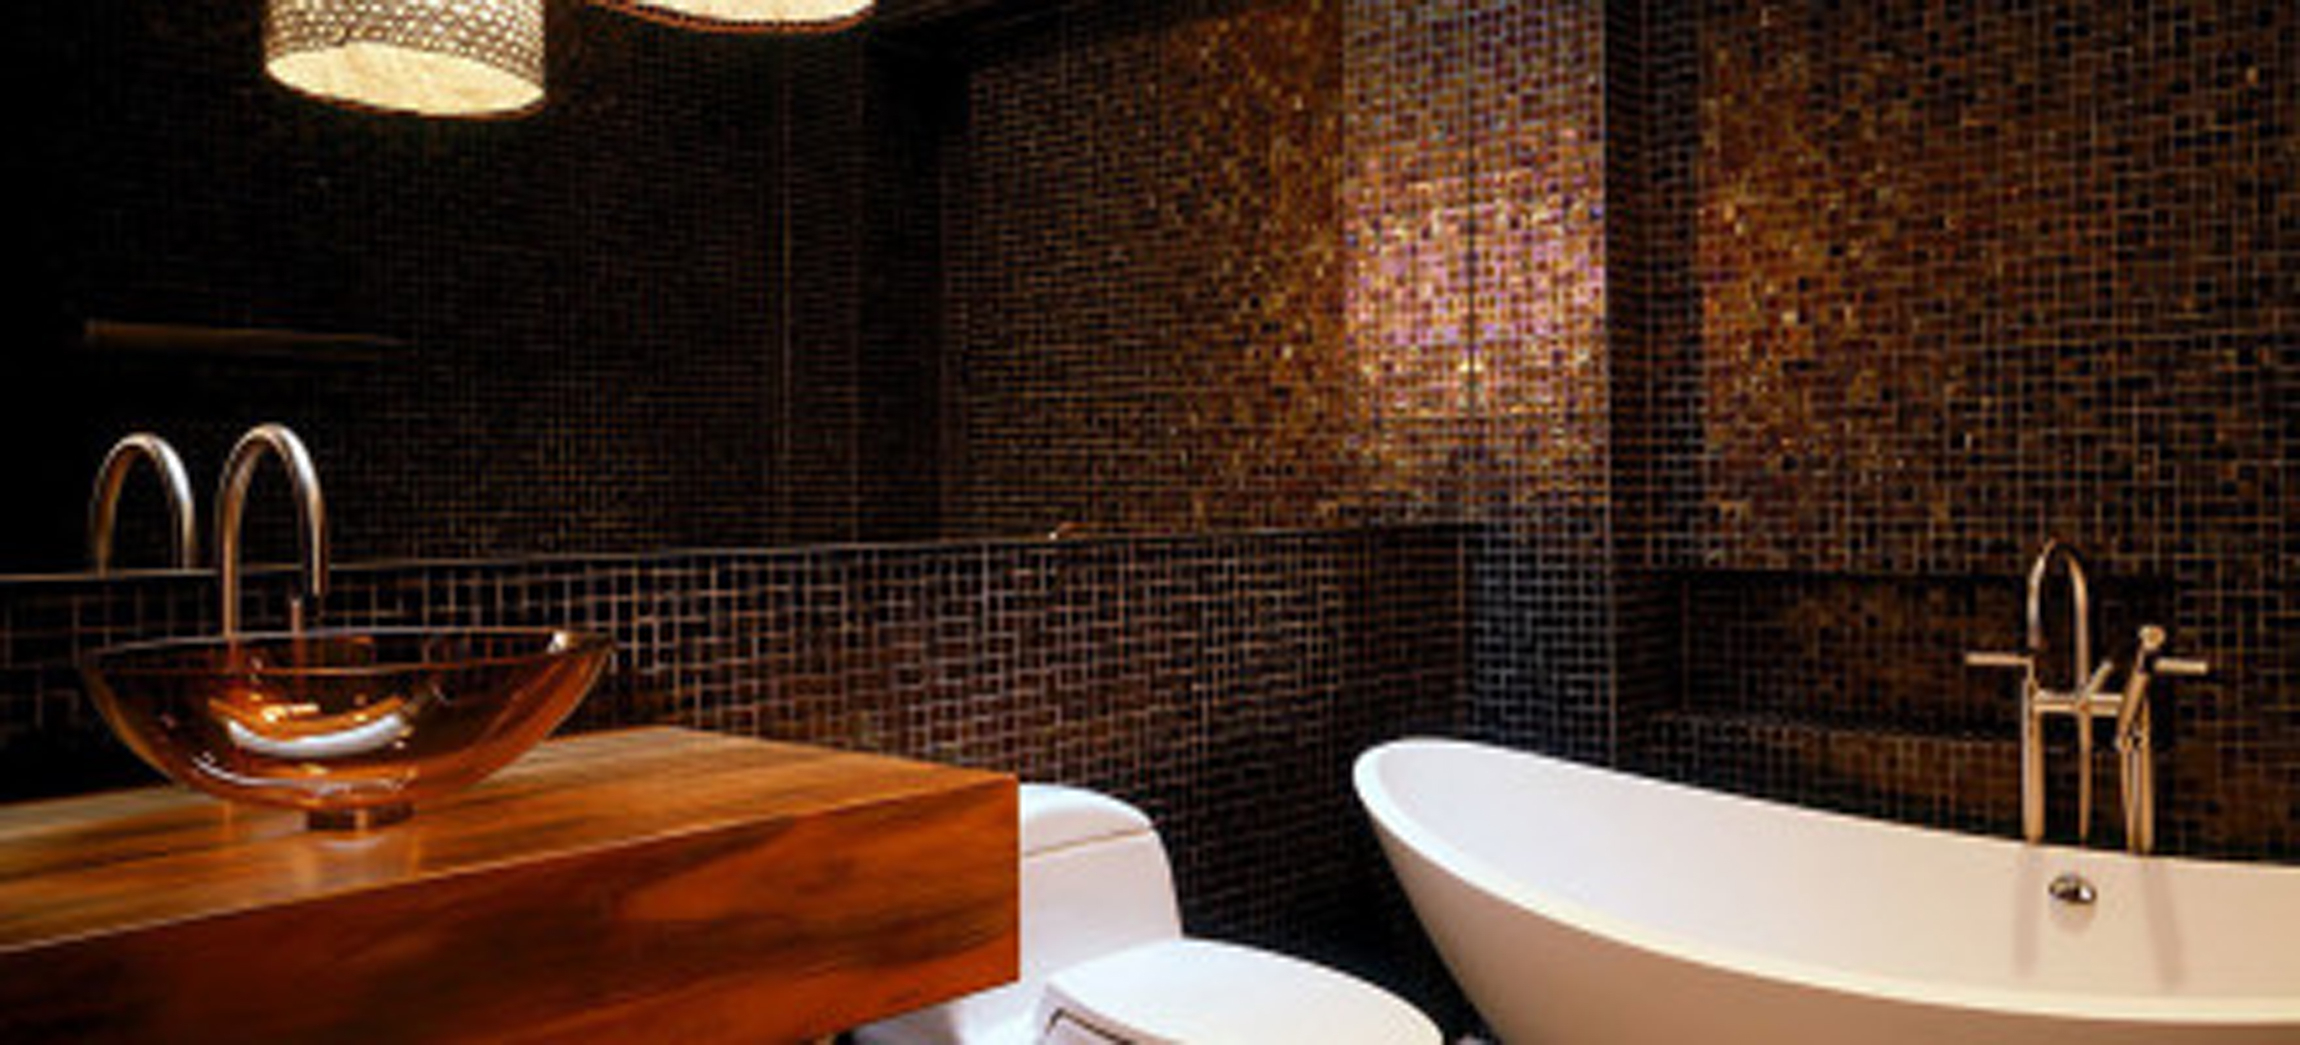 Bathroom Decorate With Sweet White Soaking Tub And Personable Black Textured Wall Even Divine Pendant Lamp (View 13 of 23)